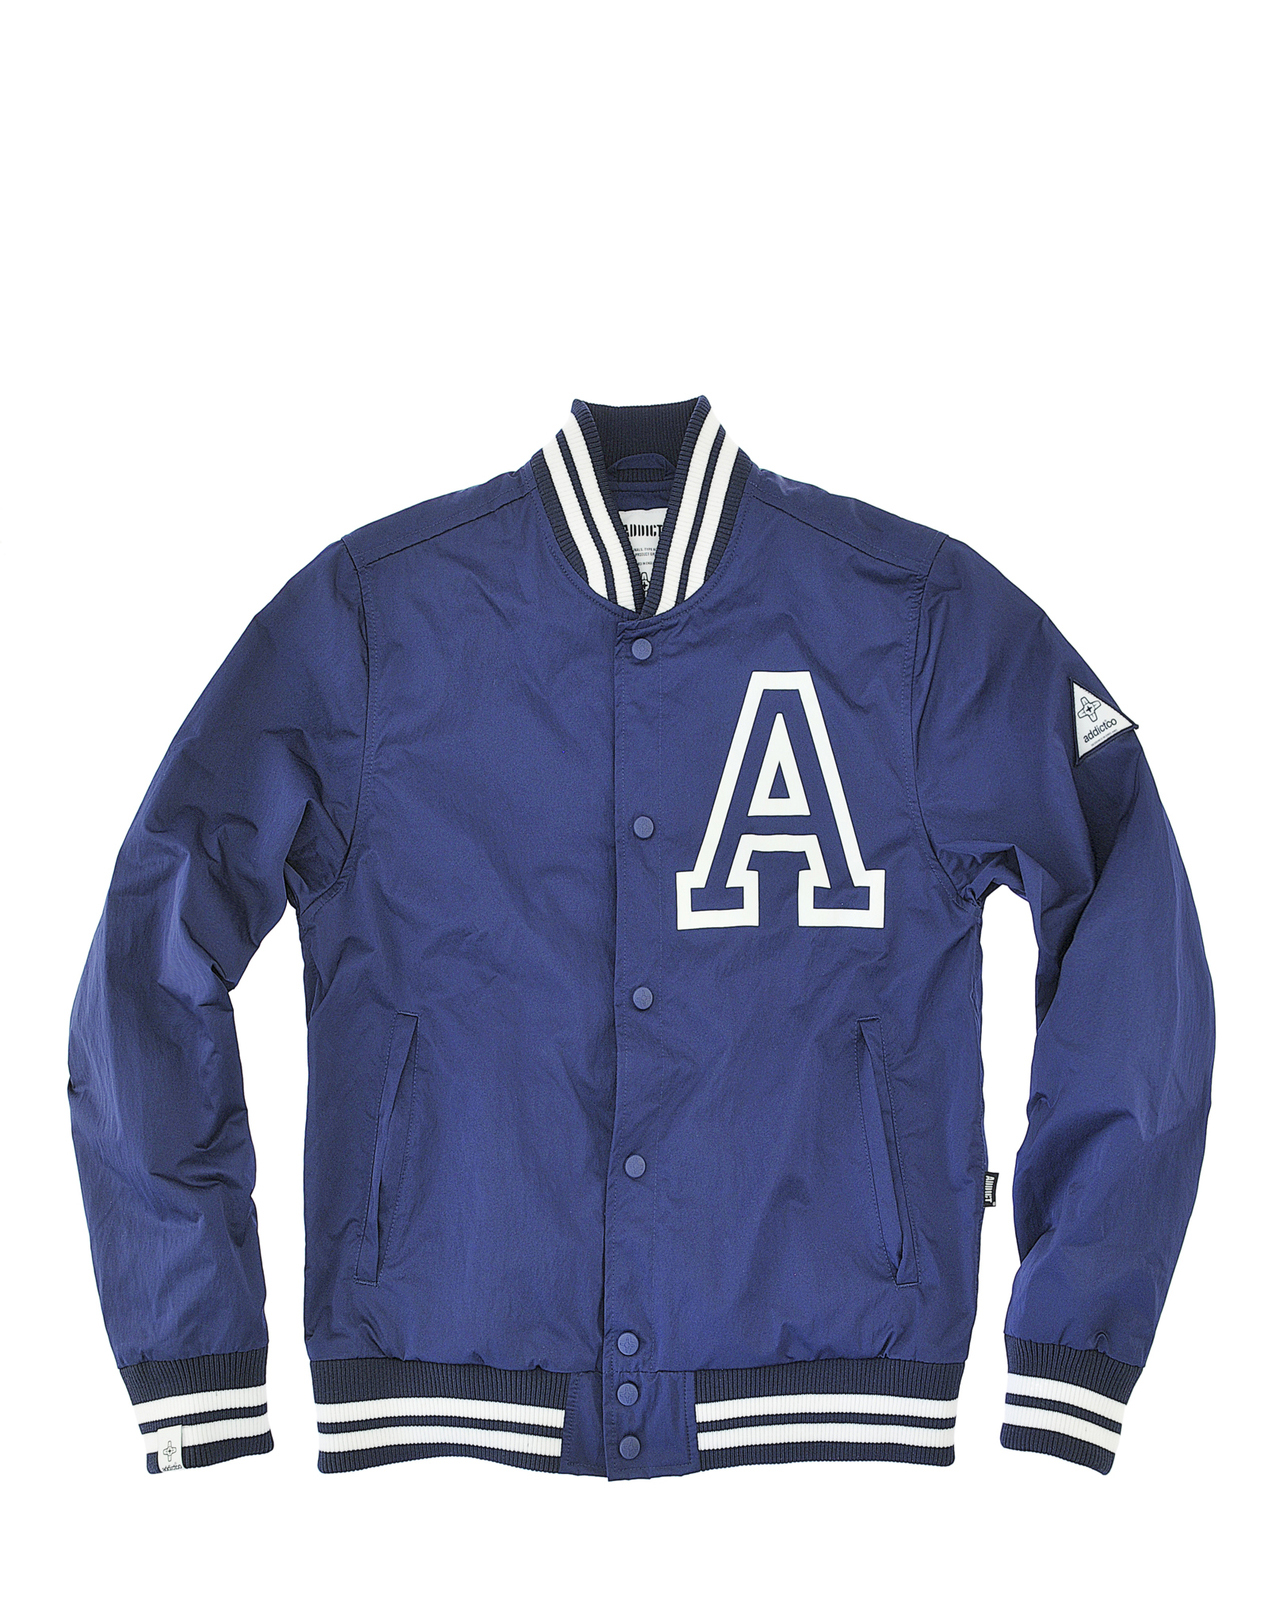 Addict Mens College Style Bomber Varsity Tour Jacket Ebay